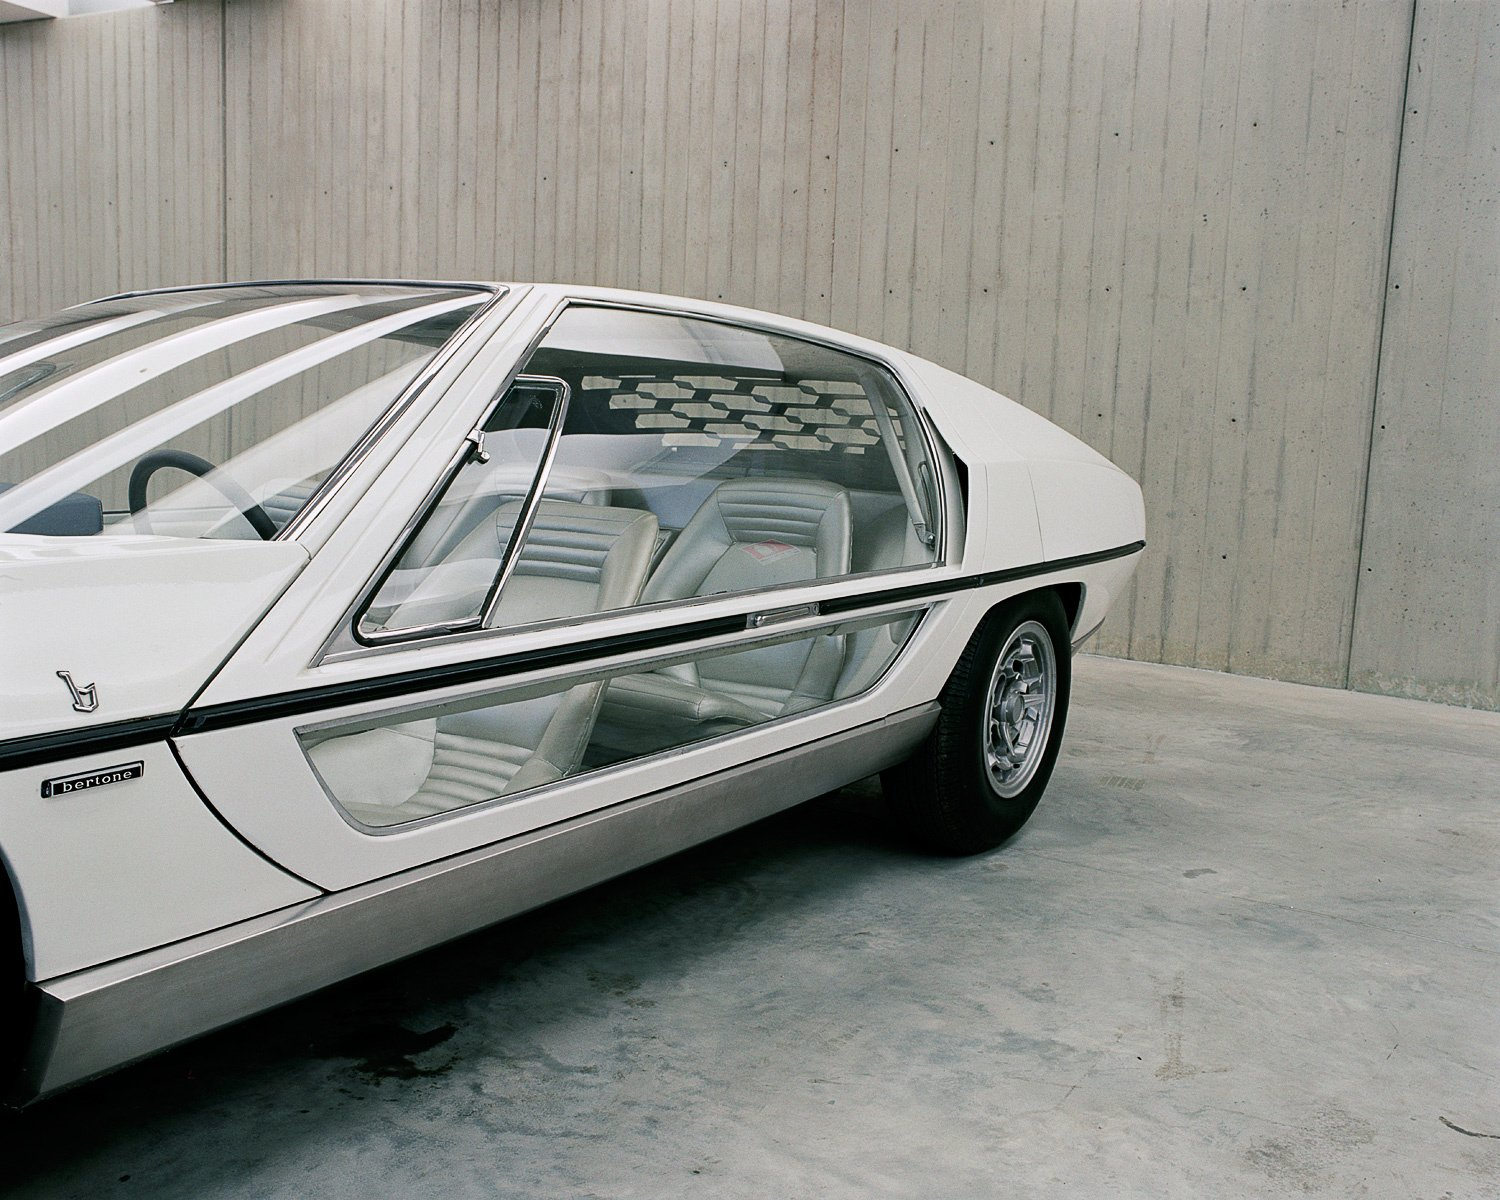 Latest Lamborghini Marzal By Bertone Modern Design By Free Download